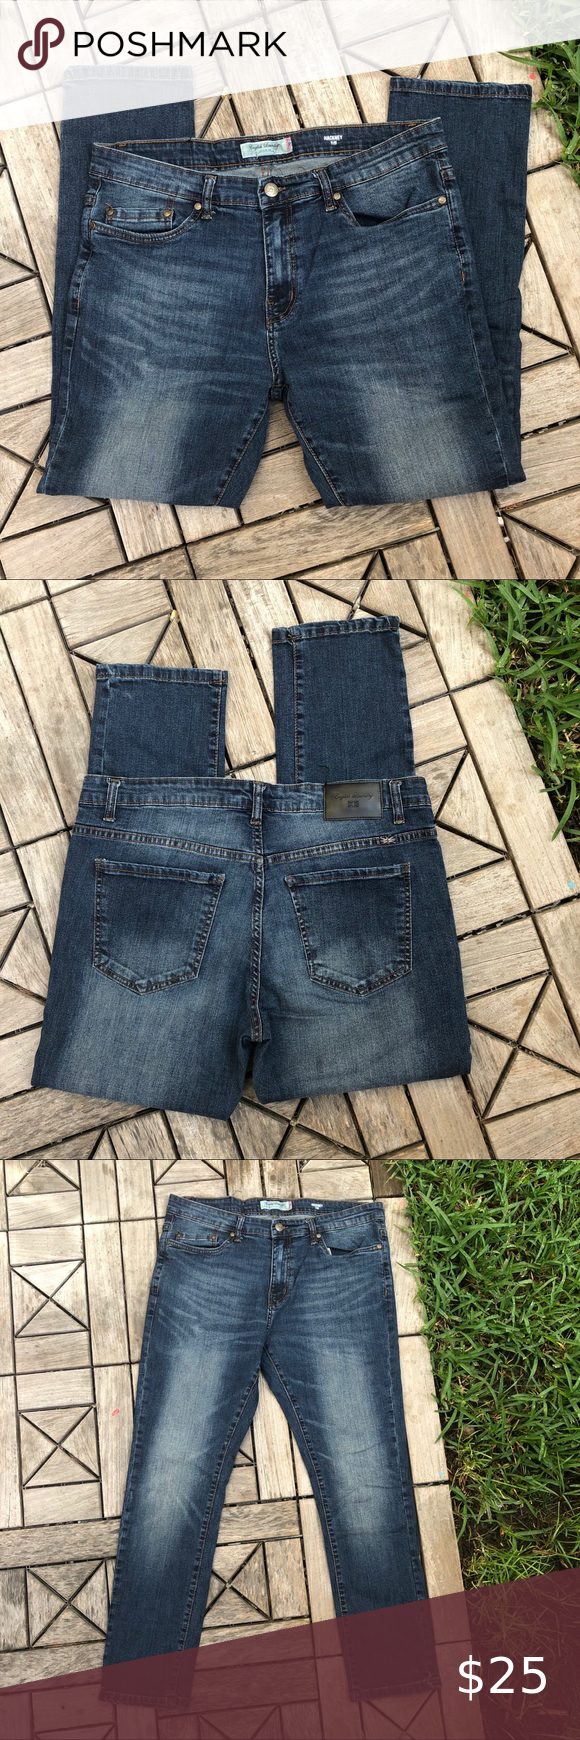 English Laundry Hackney Slim Jeans Size 33x30 In 2020 Slim Jeans